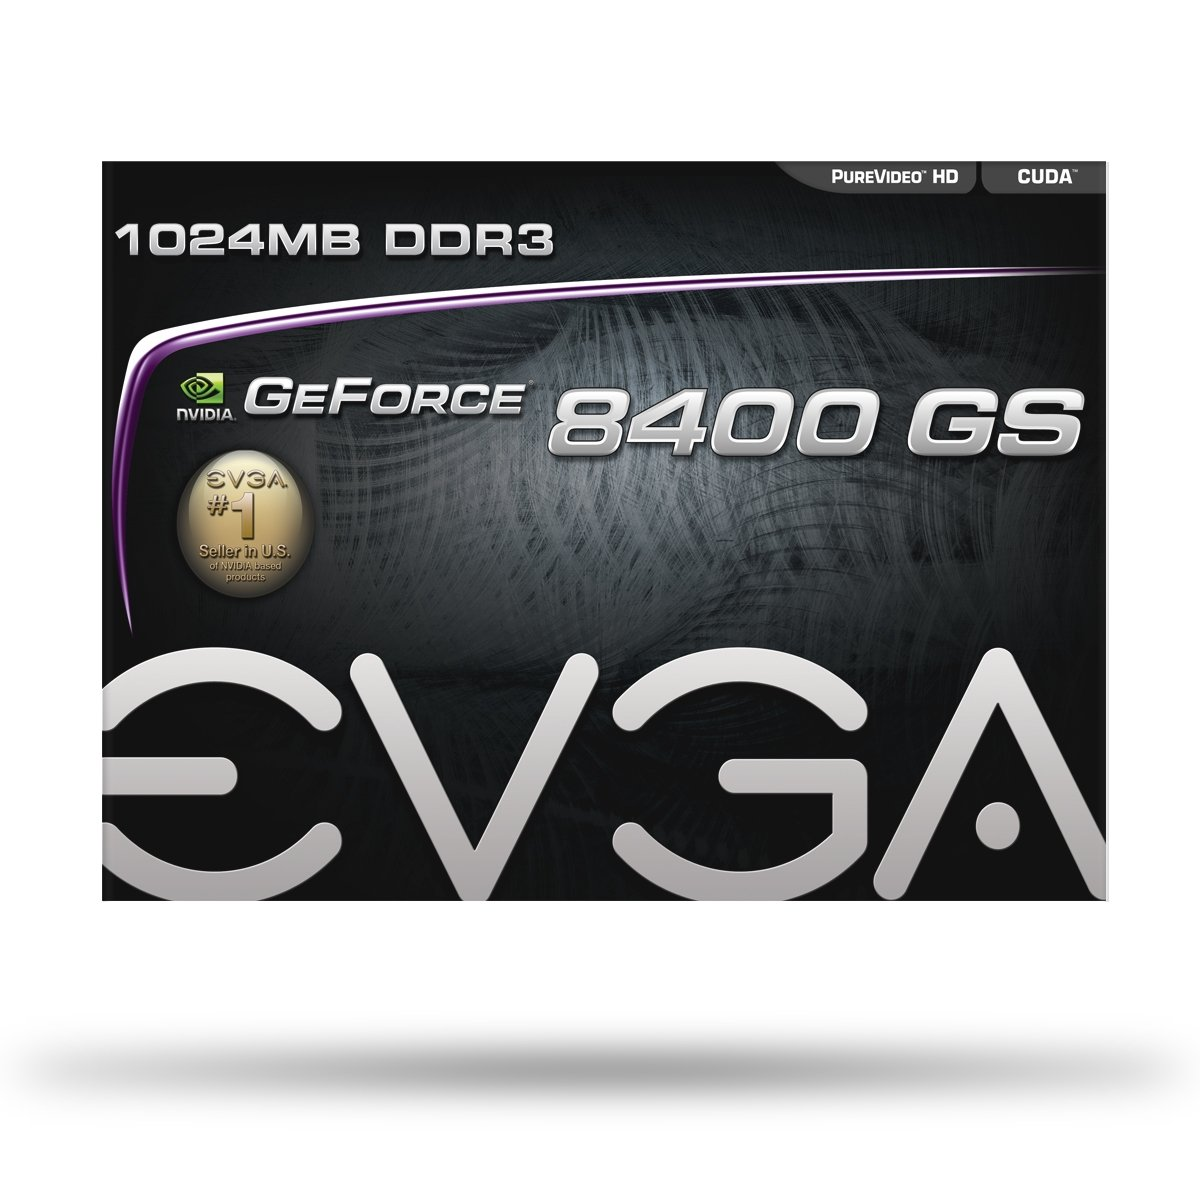 EVGA 1GB GeForce 8400 GS DirectX 10 64-Bit DDR3 PCI Express 2.0 x16 HDCP Ready Video Card Model 01G-P3-1302-LR by EVGA